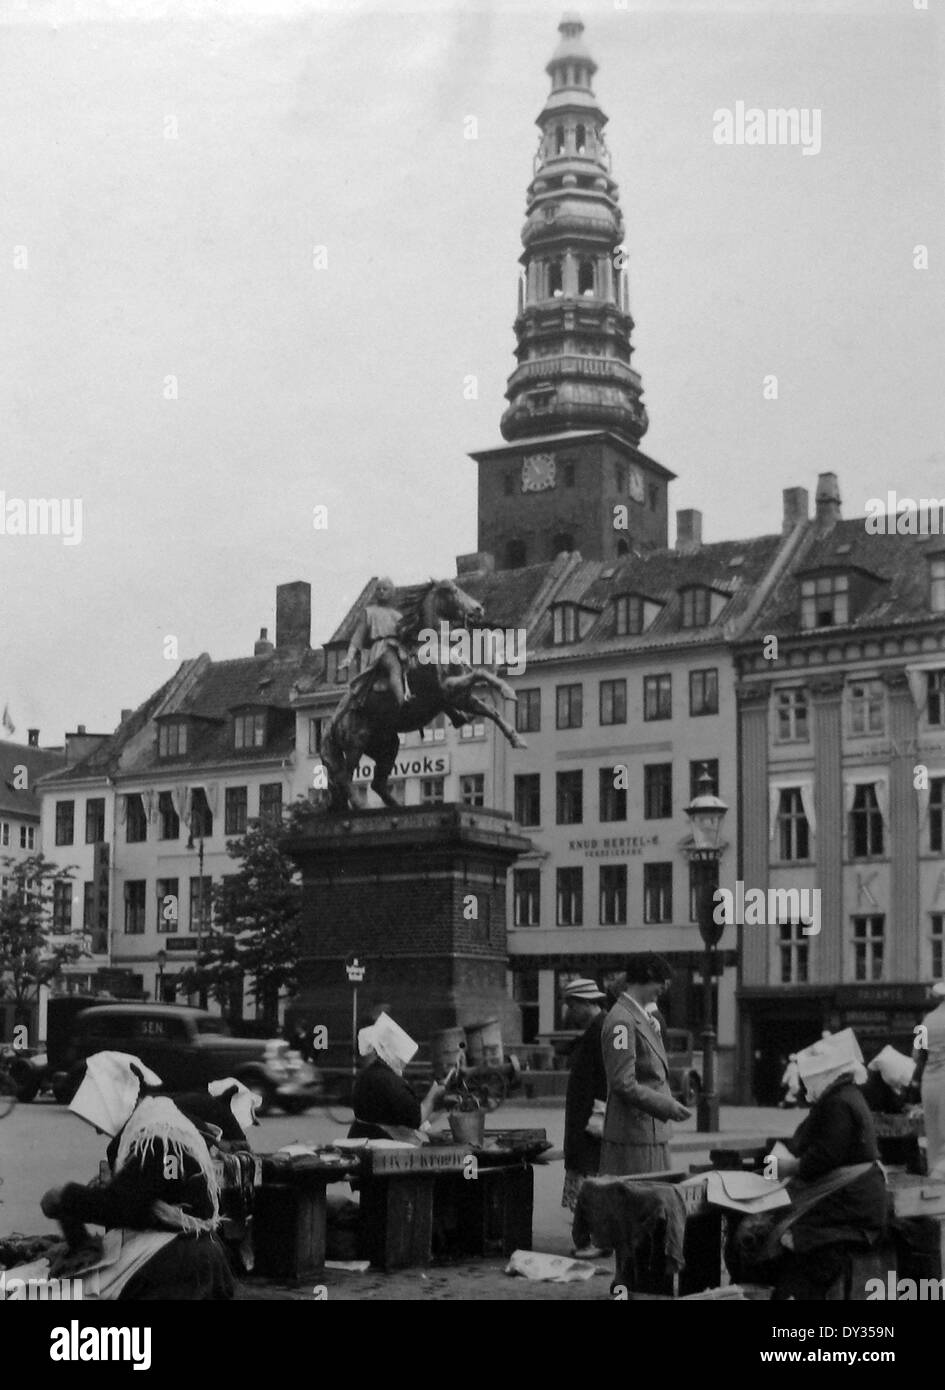 Market Copenhagen Denmark in the 1930s - Stock Image